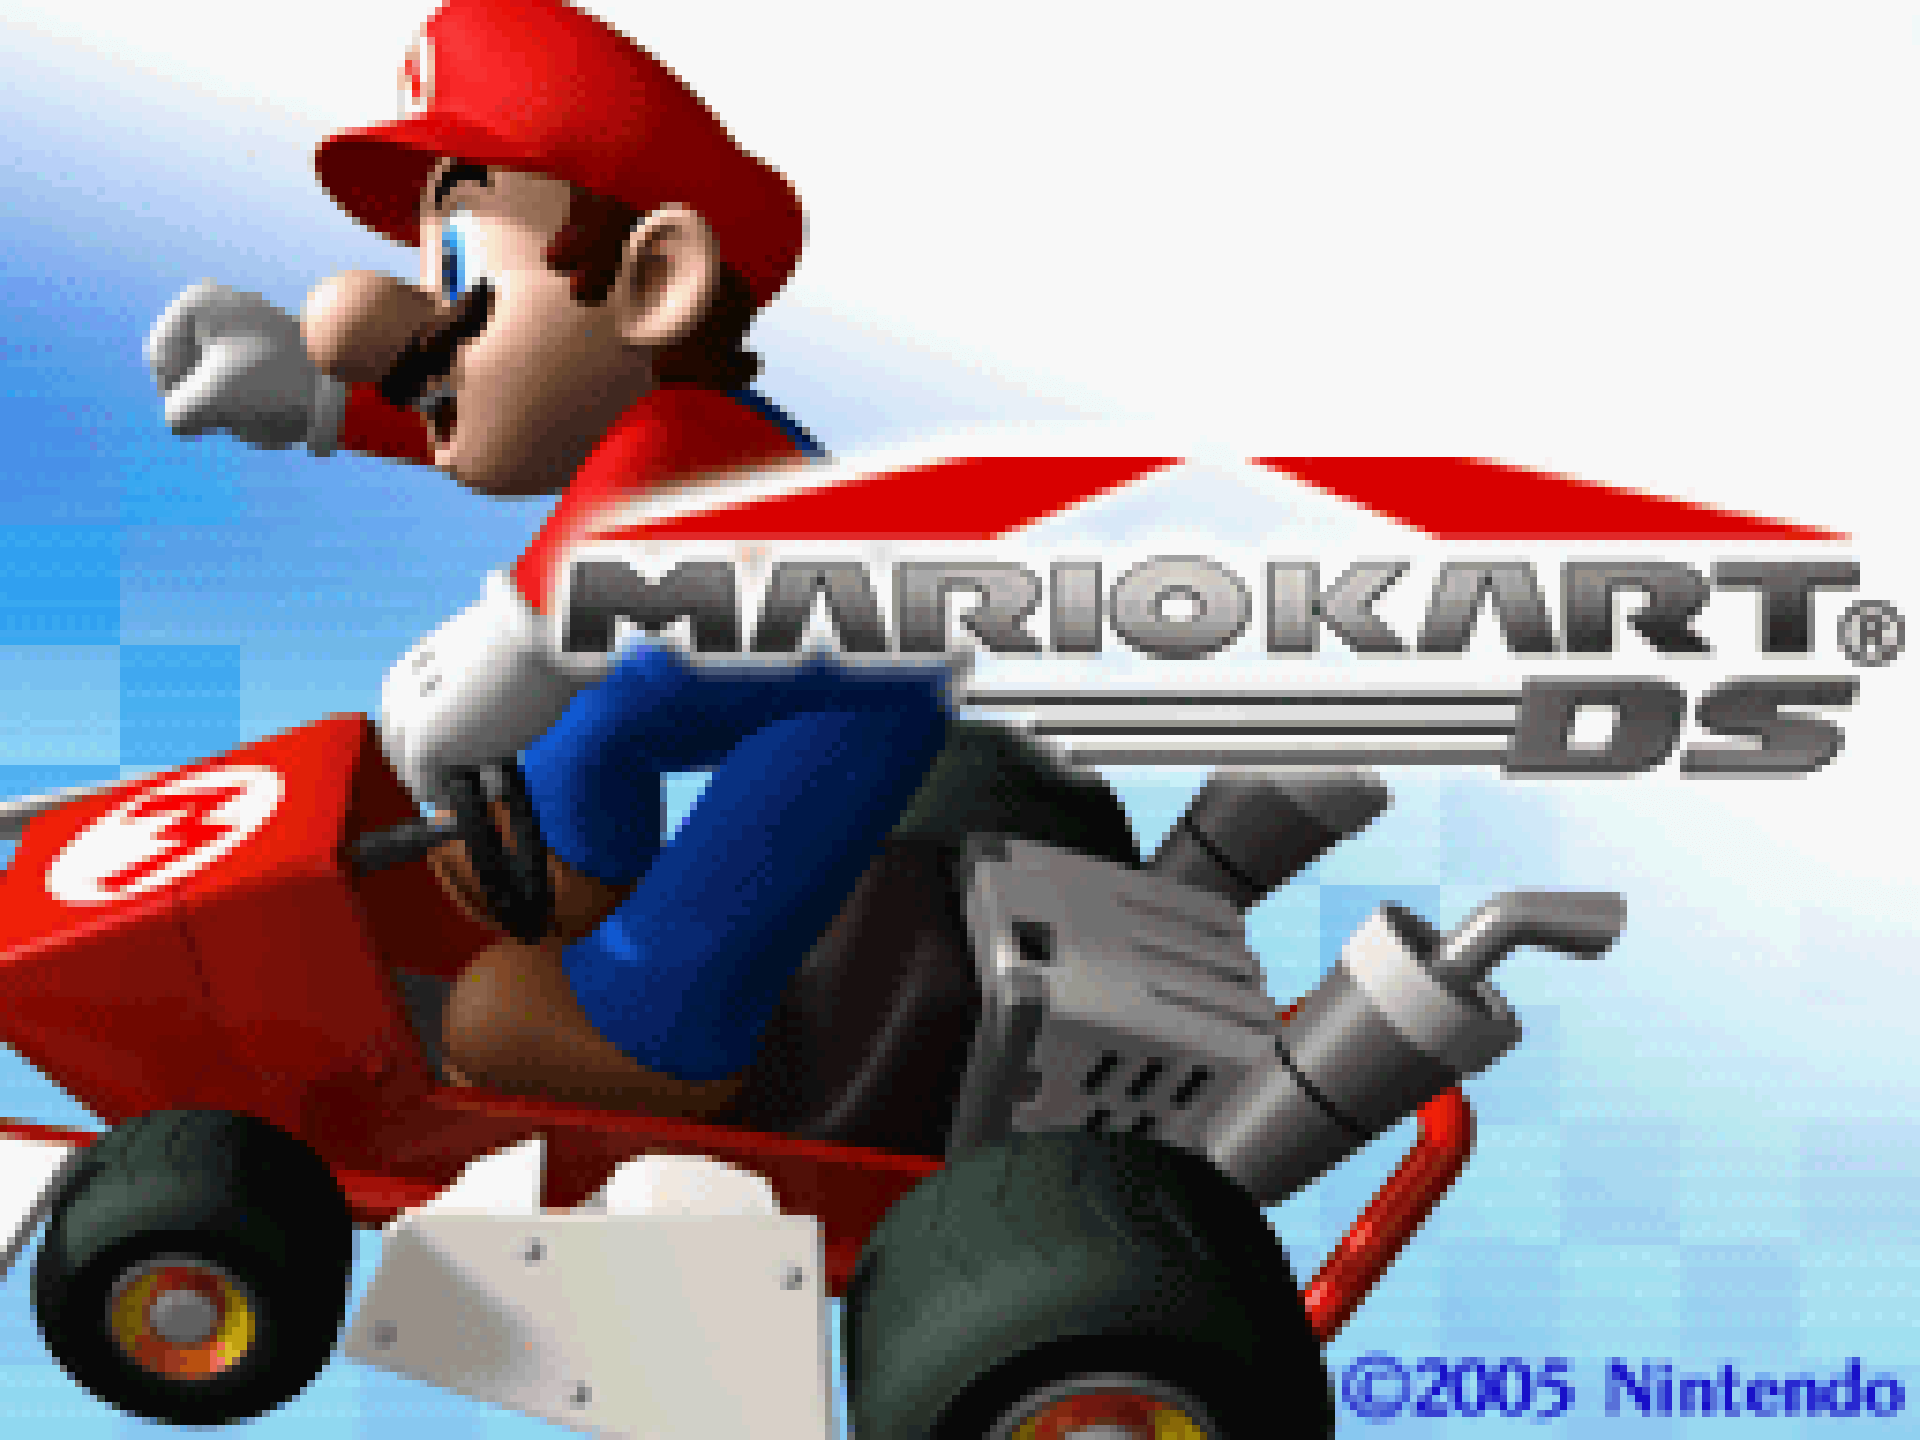 The title screen for Mario Kart DS.